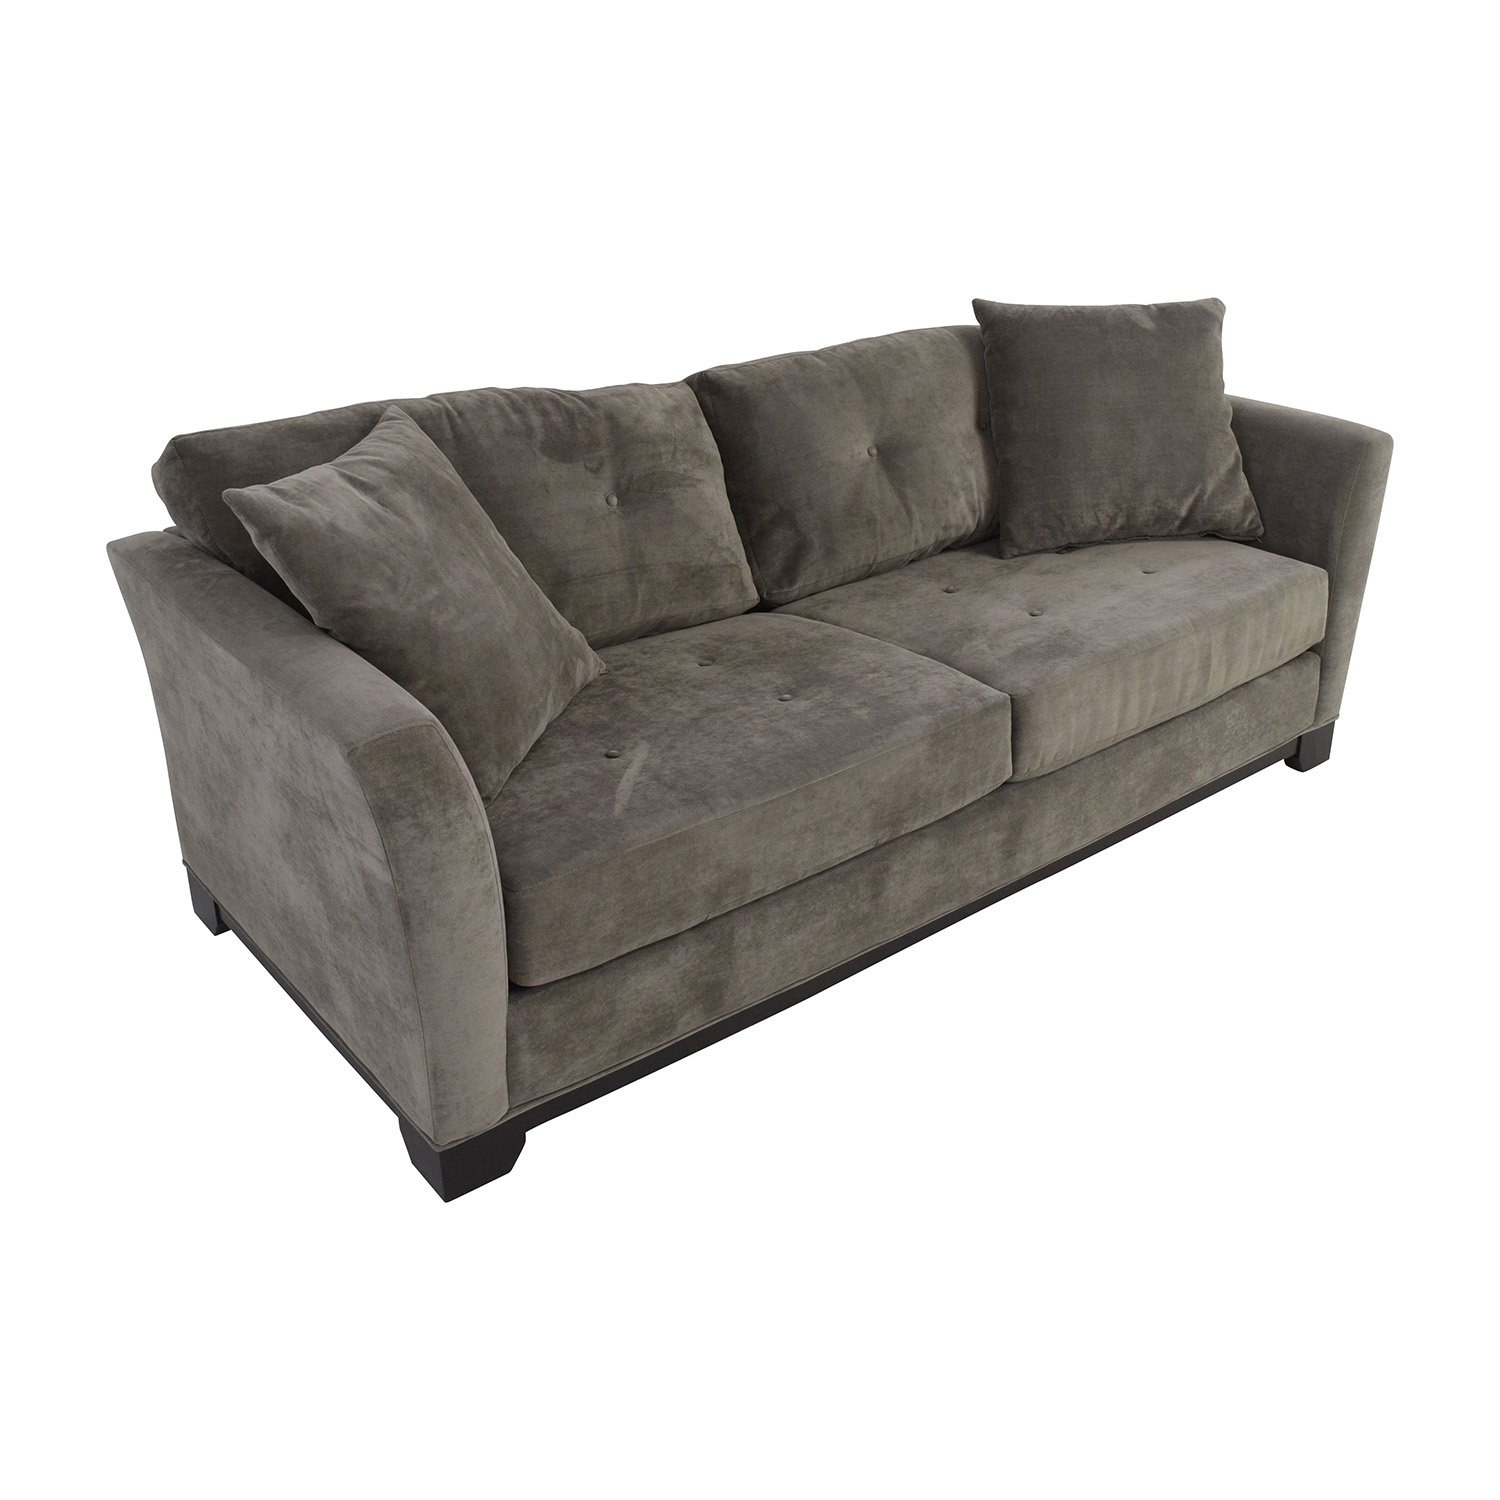 Macy's Macy's Grey Tufted Couch / Sofas